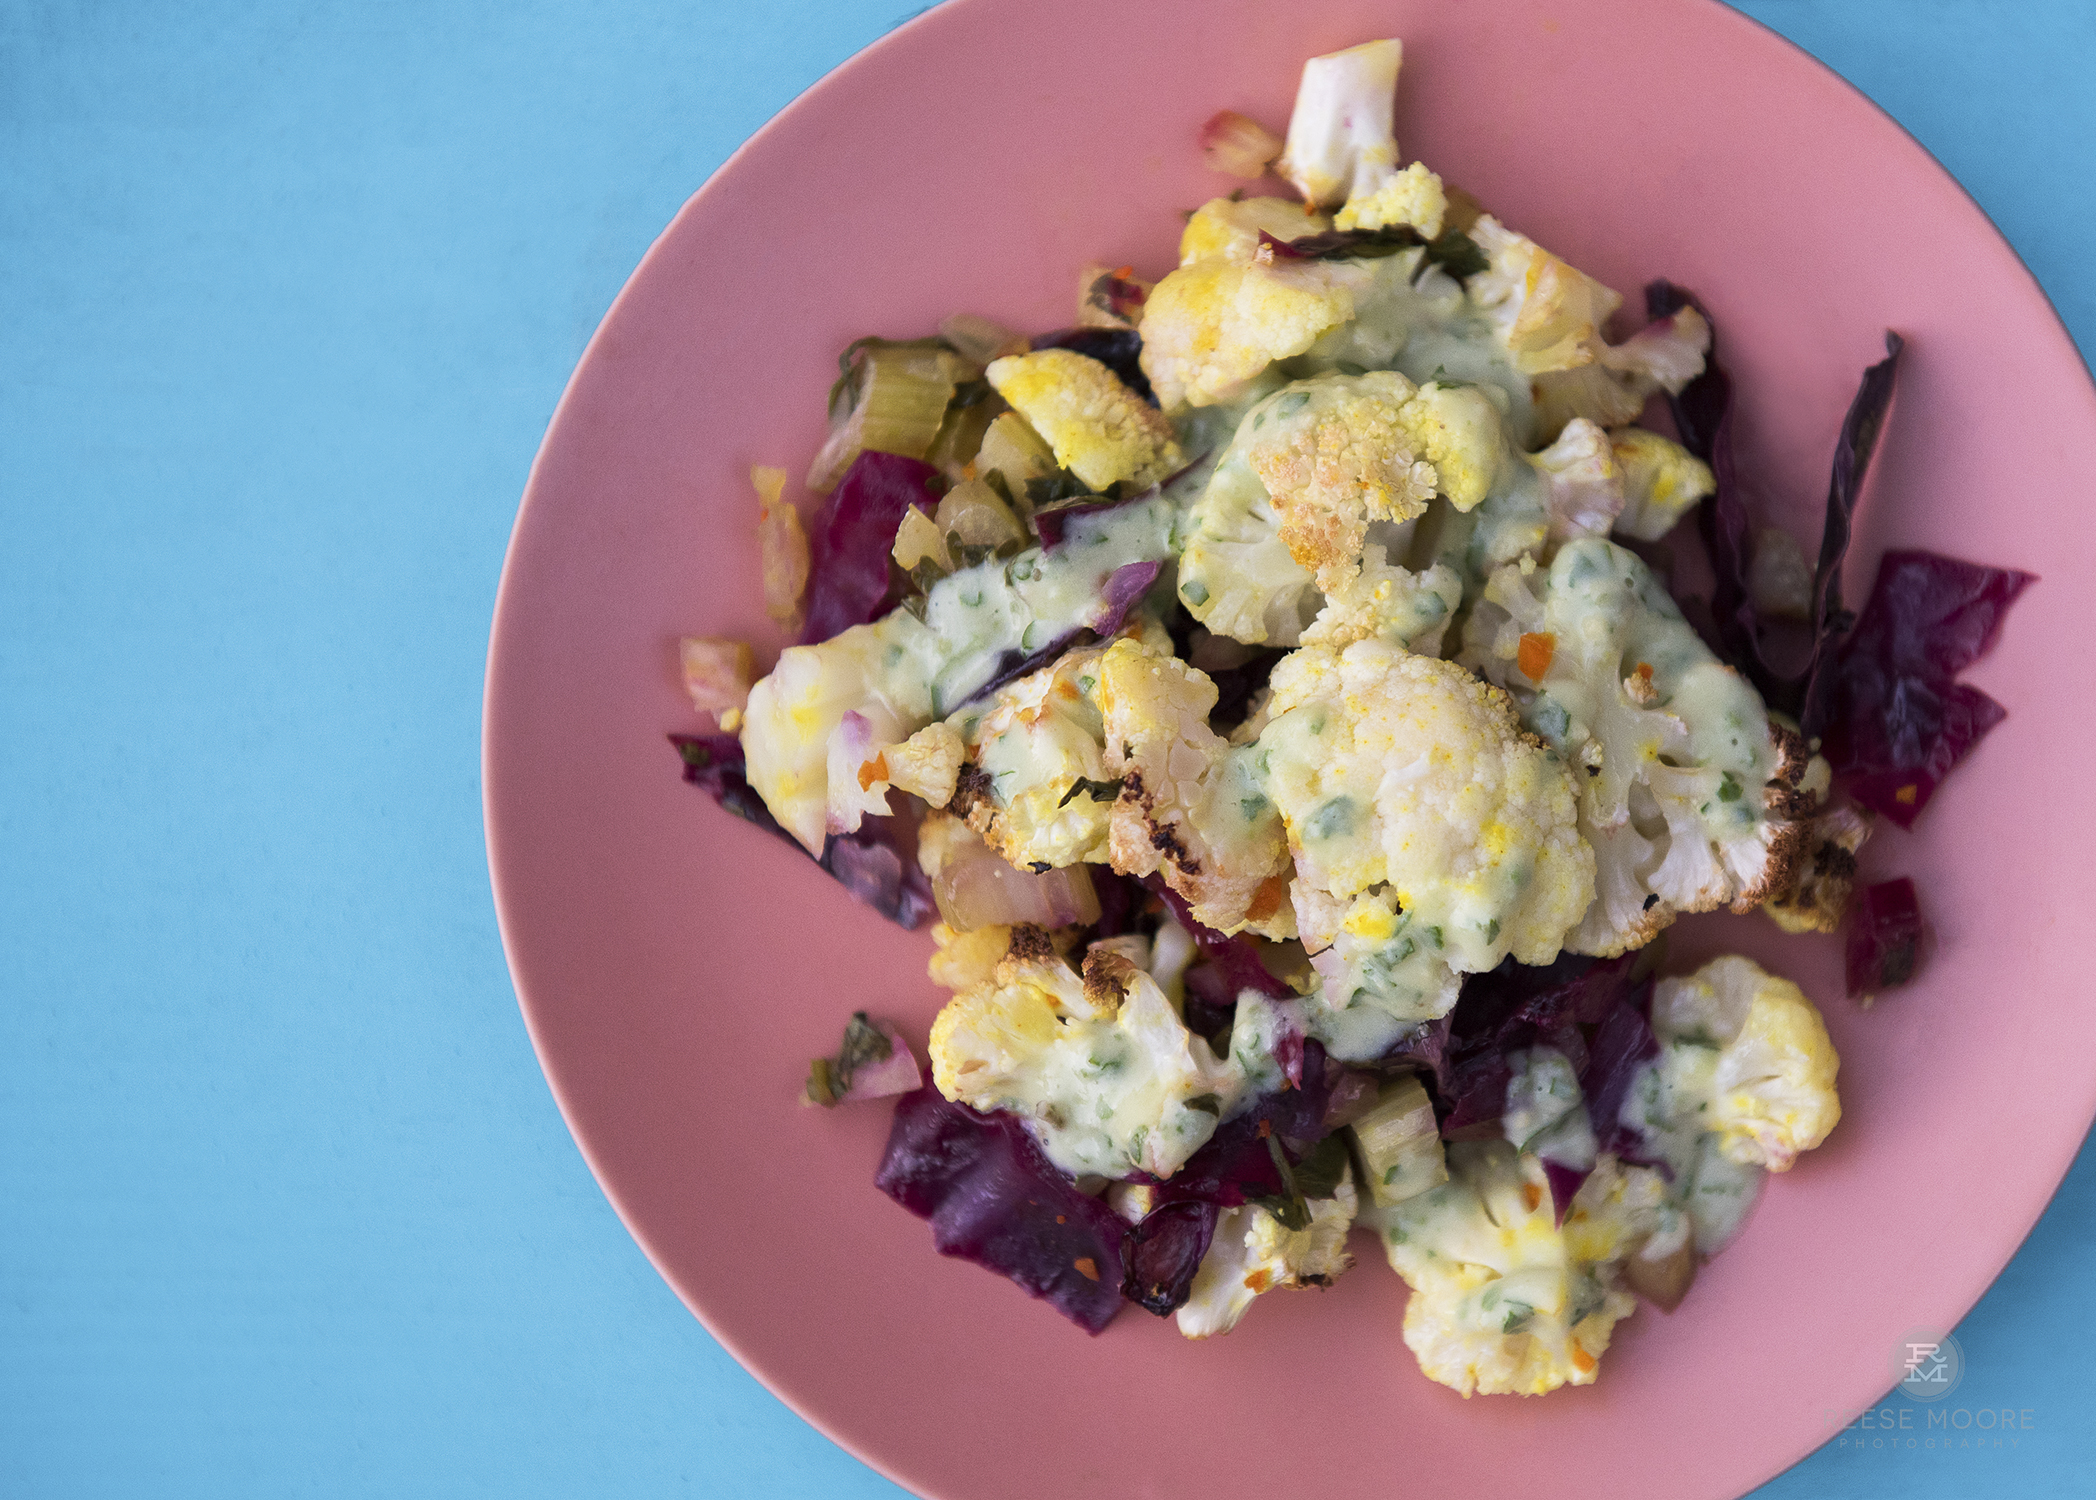 Turmeric Cauliflower Bake - Gluten free, vegan recipe by Alicia Pope with Eat Your Way Clean100% Plastic Packaging Free Ingredients